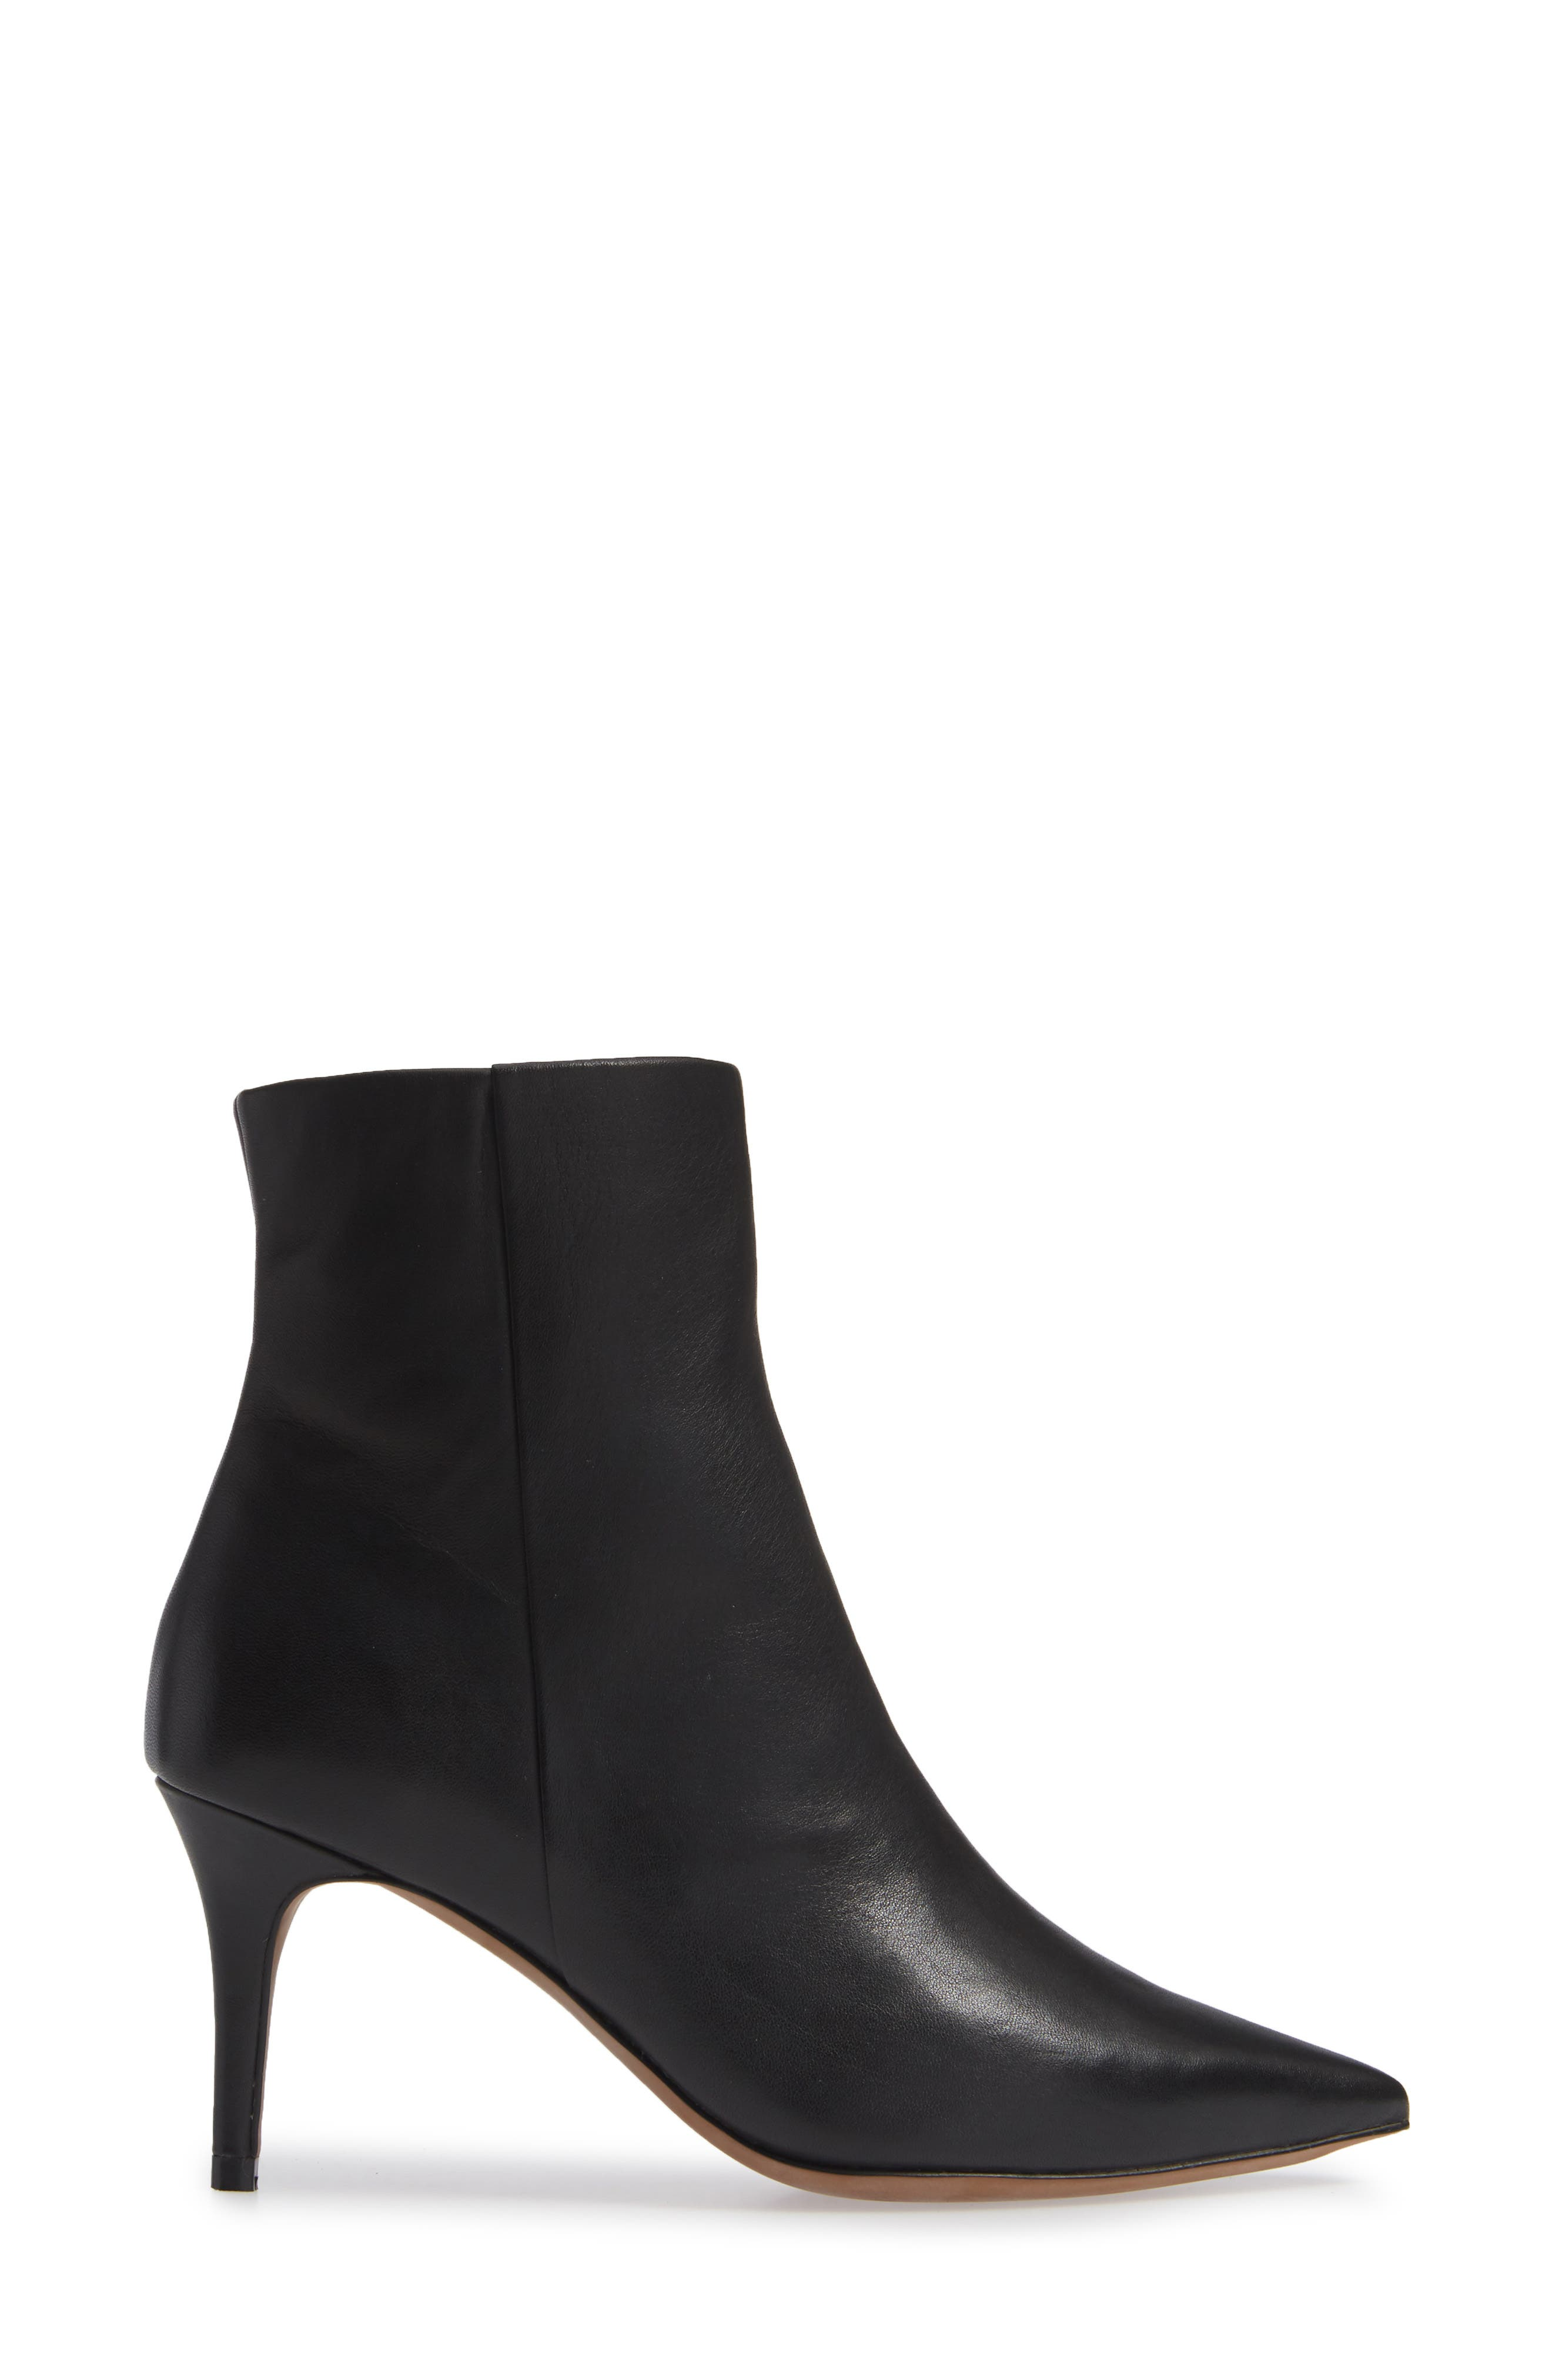 Nita Bootie,                             Alternate thumbnail 3, color,                             BLACK LEATHER